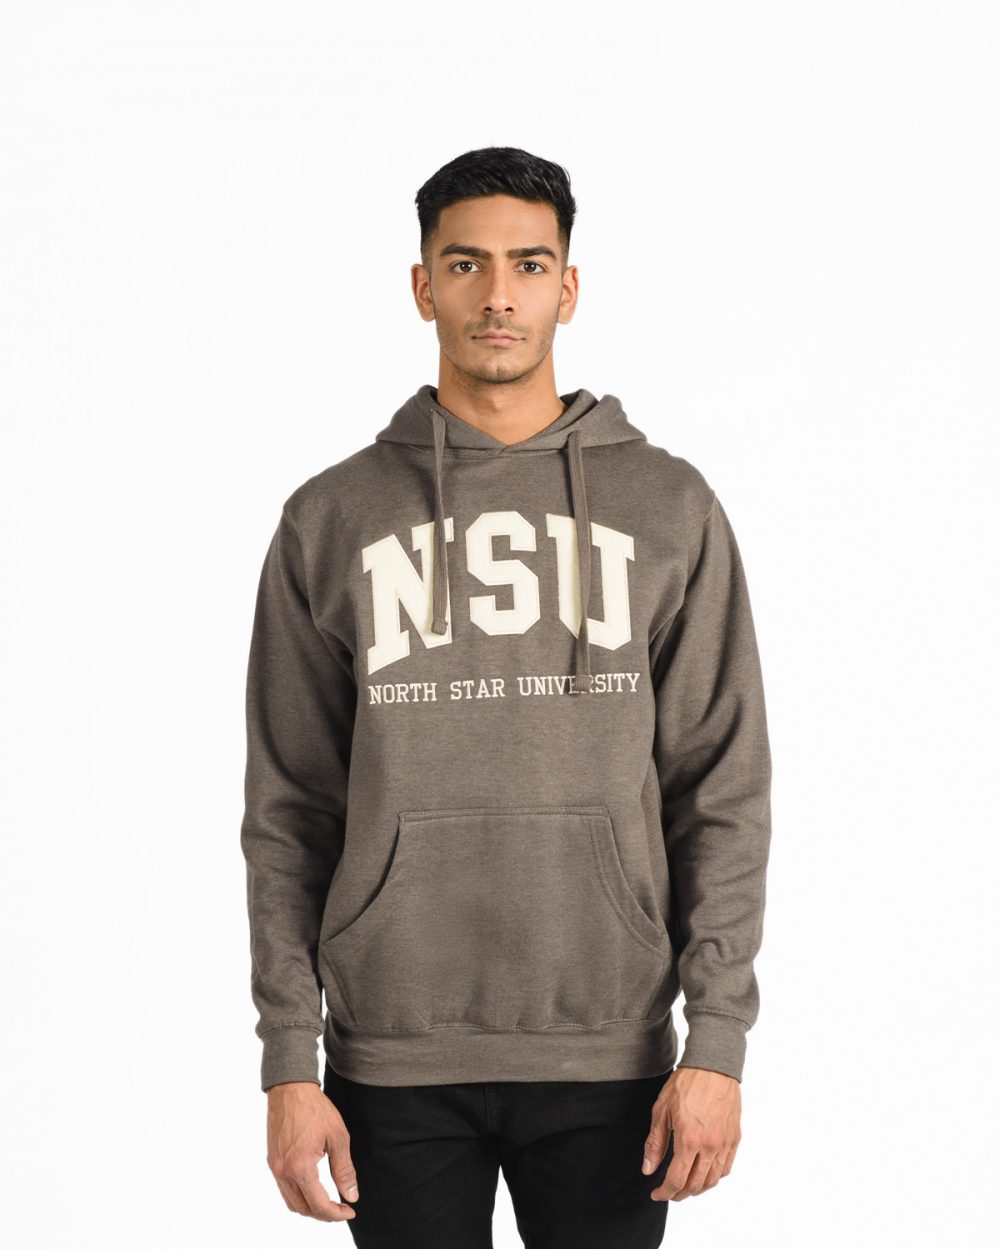 Signature Hood 201 in brown on male model.